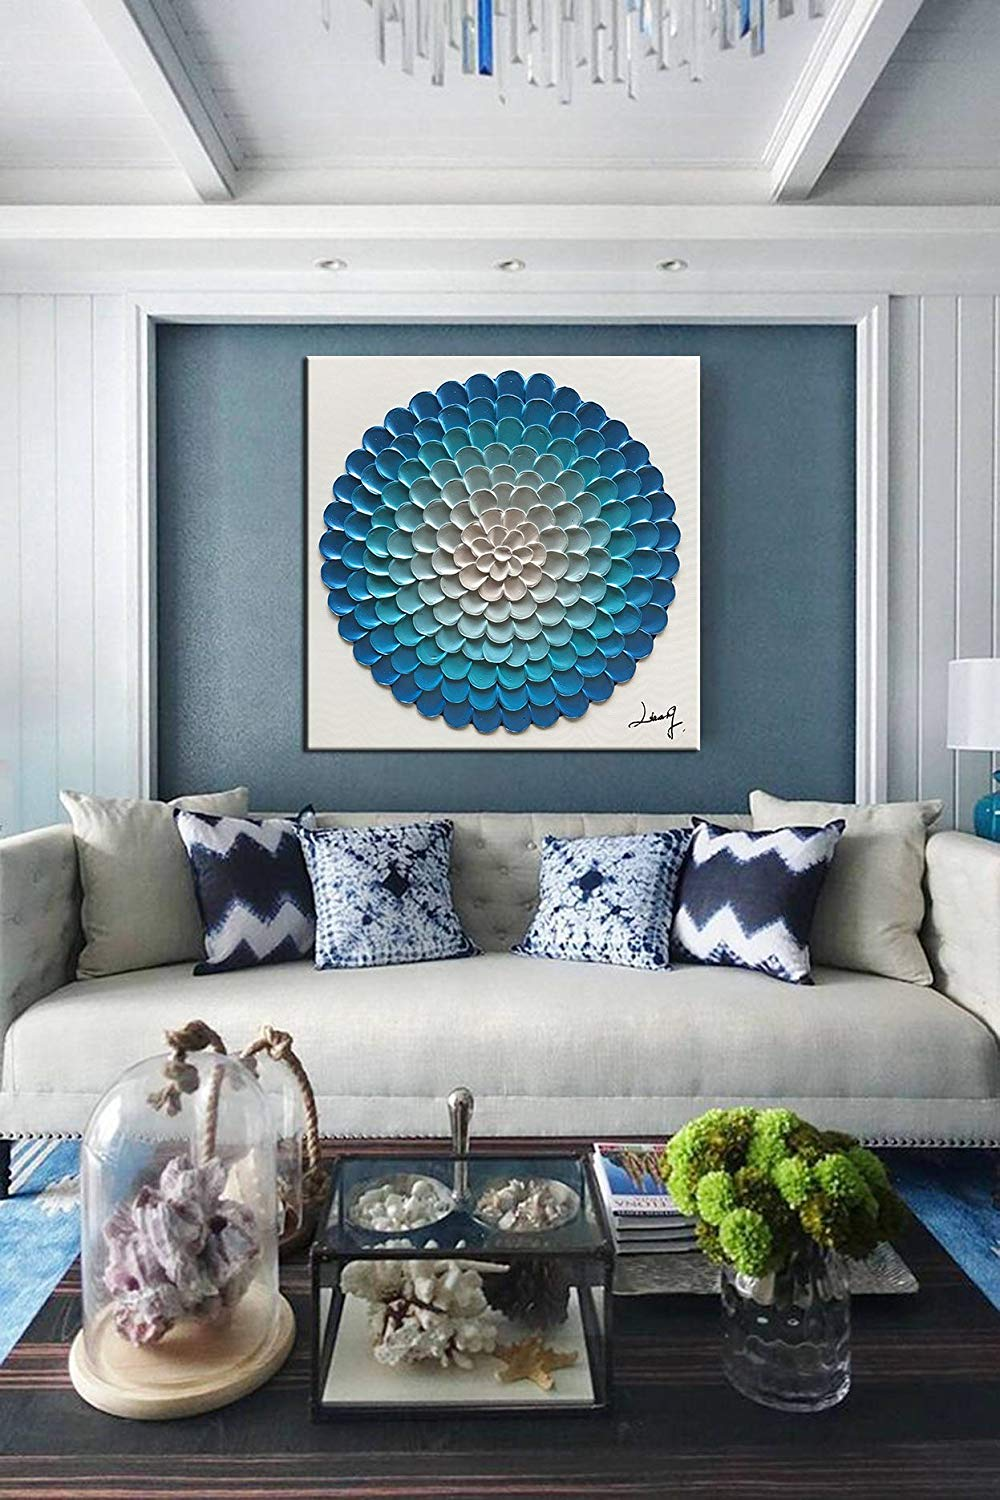 Inexpensive Artwork Decor Home Wall 100% Hand Painted Large Blue Flower Canvas Painting